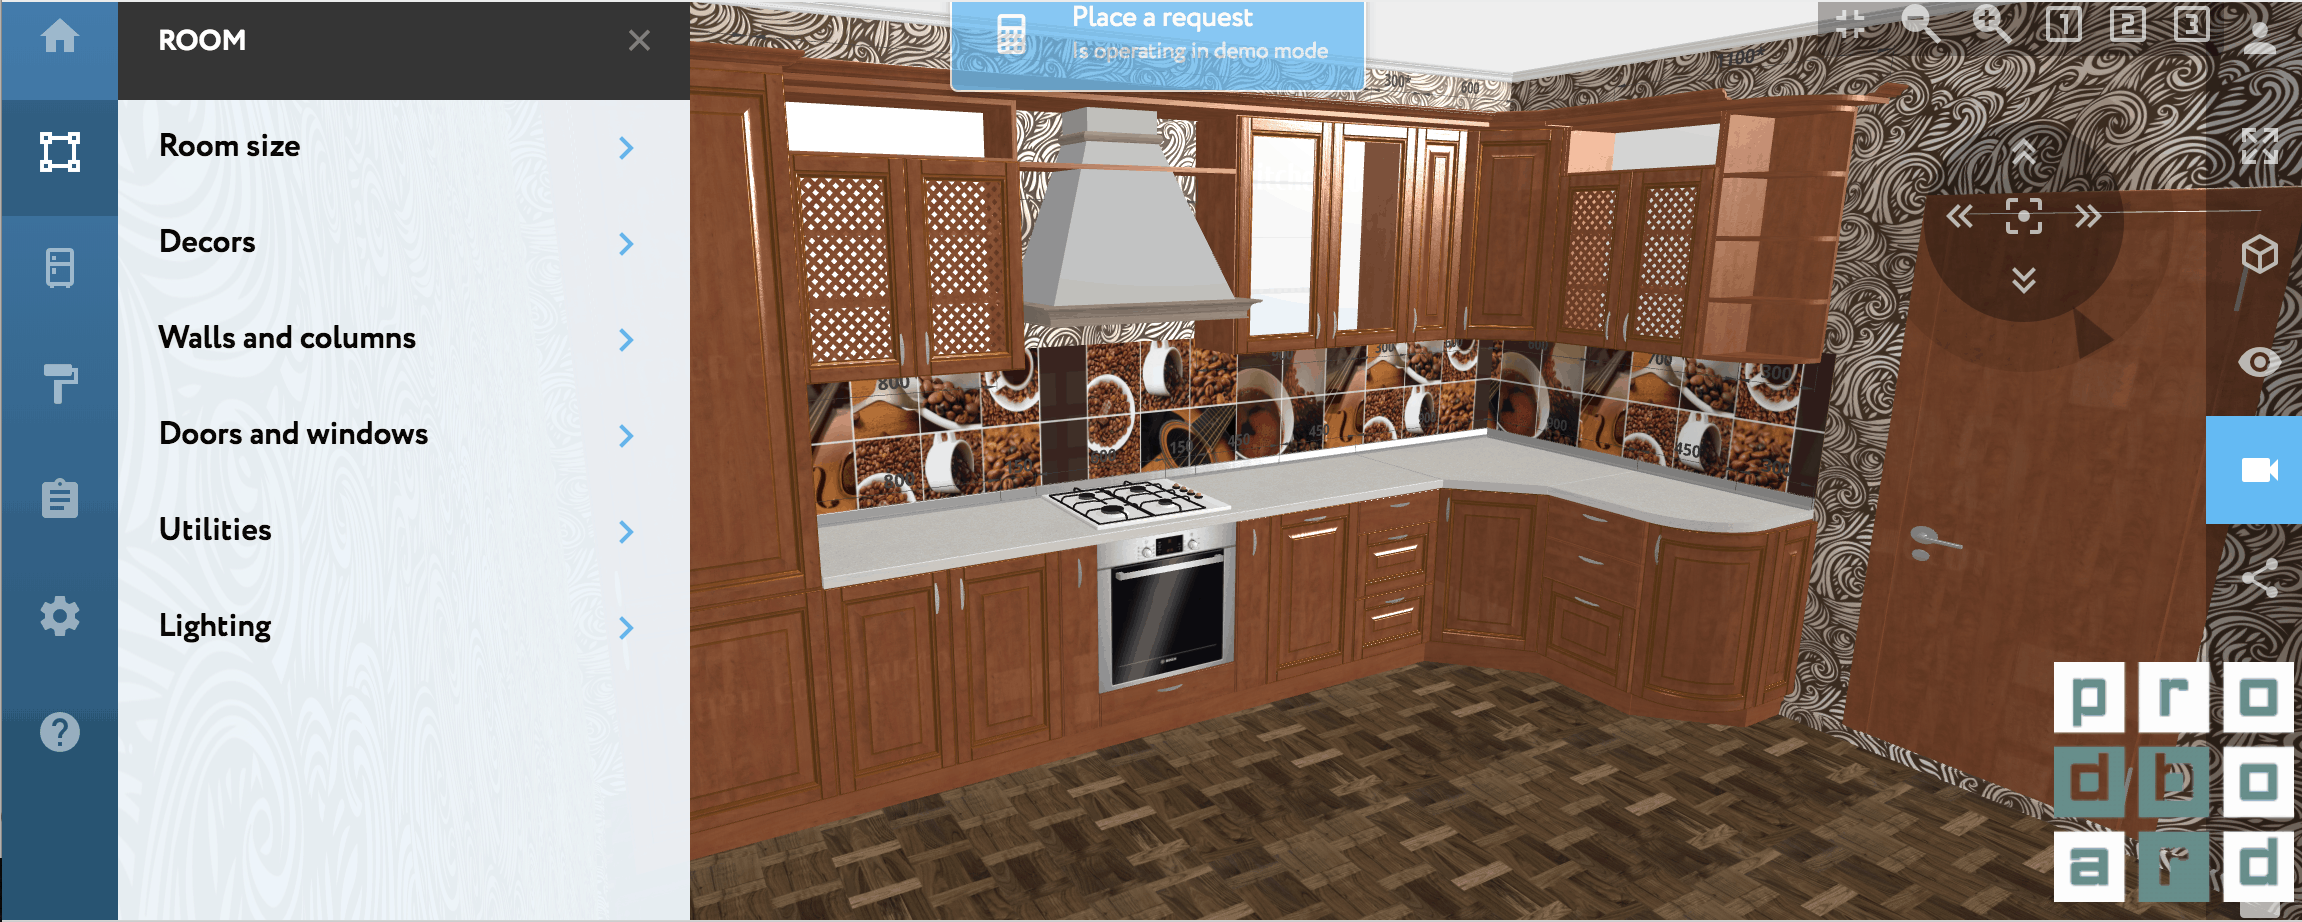 Charmant Prodboard Kitchen Design Interface